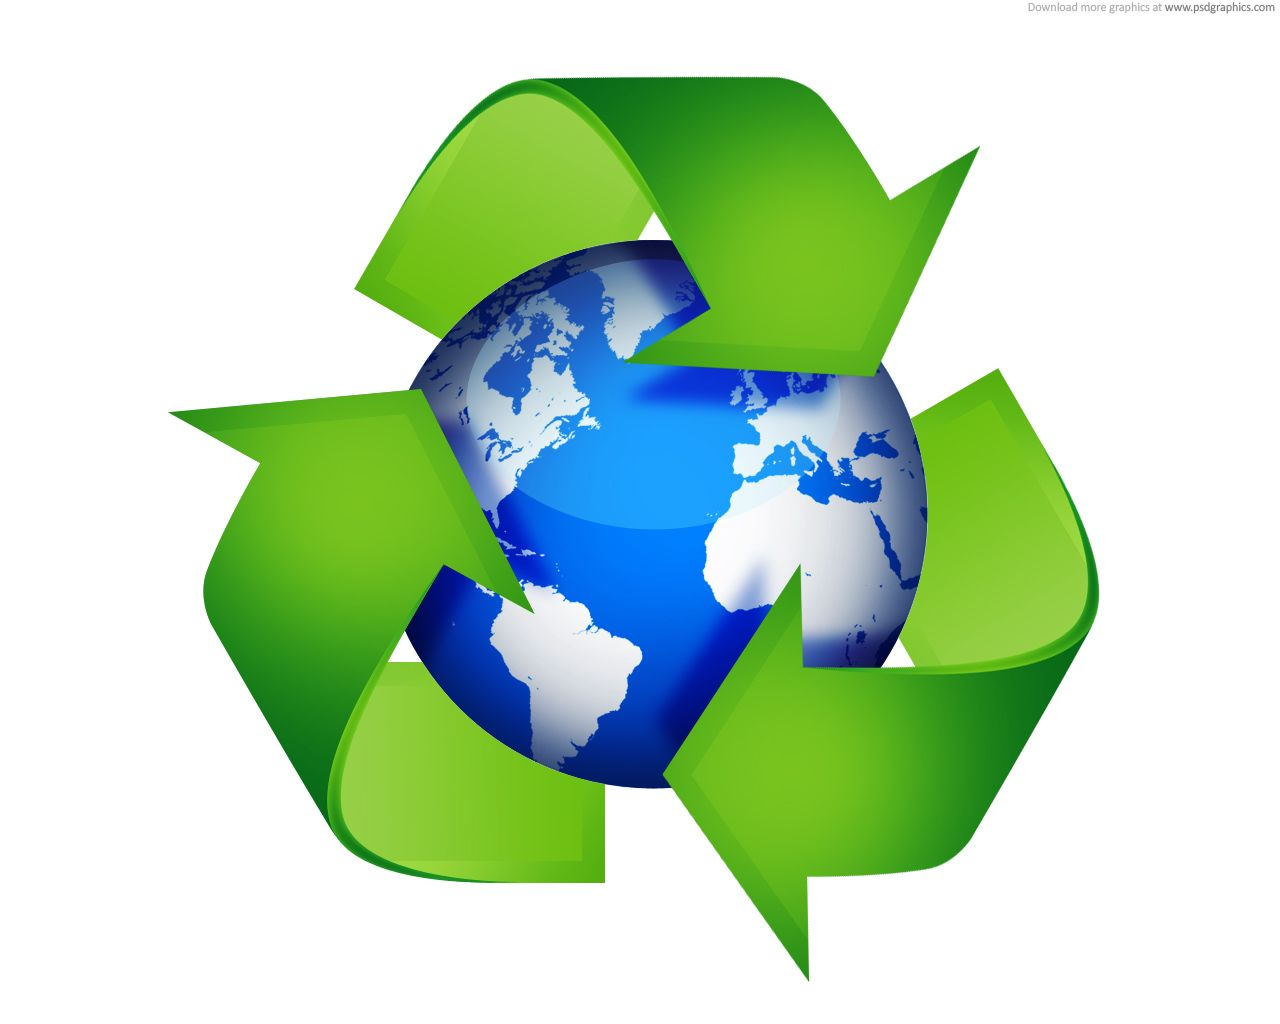 Recycling Recycle Symbol Green Recycling Recycling